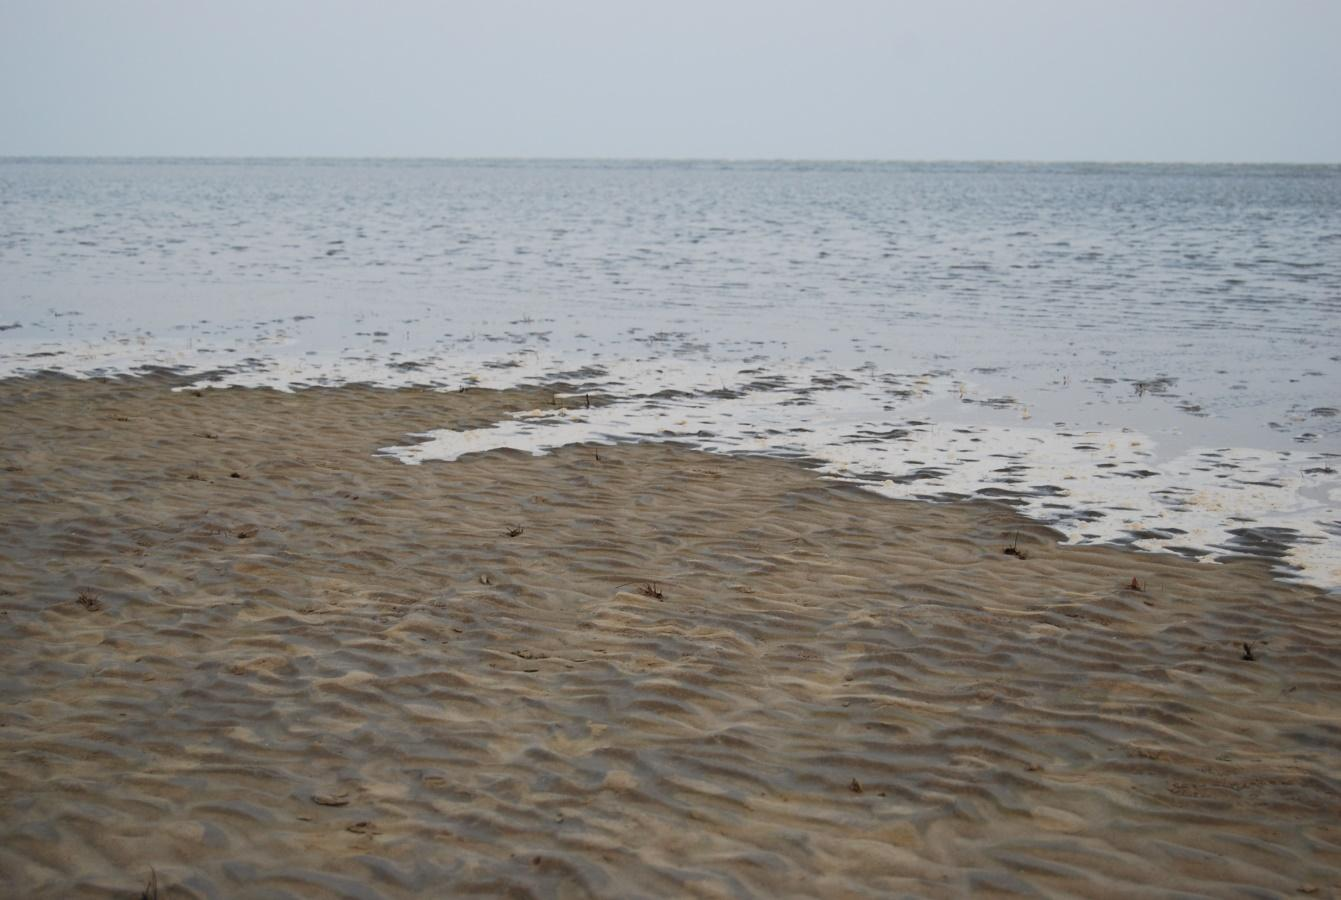 http://www.destinationindia.co.in/gifs/chandipur-beach.jpg